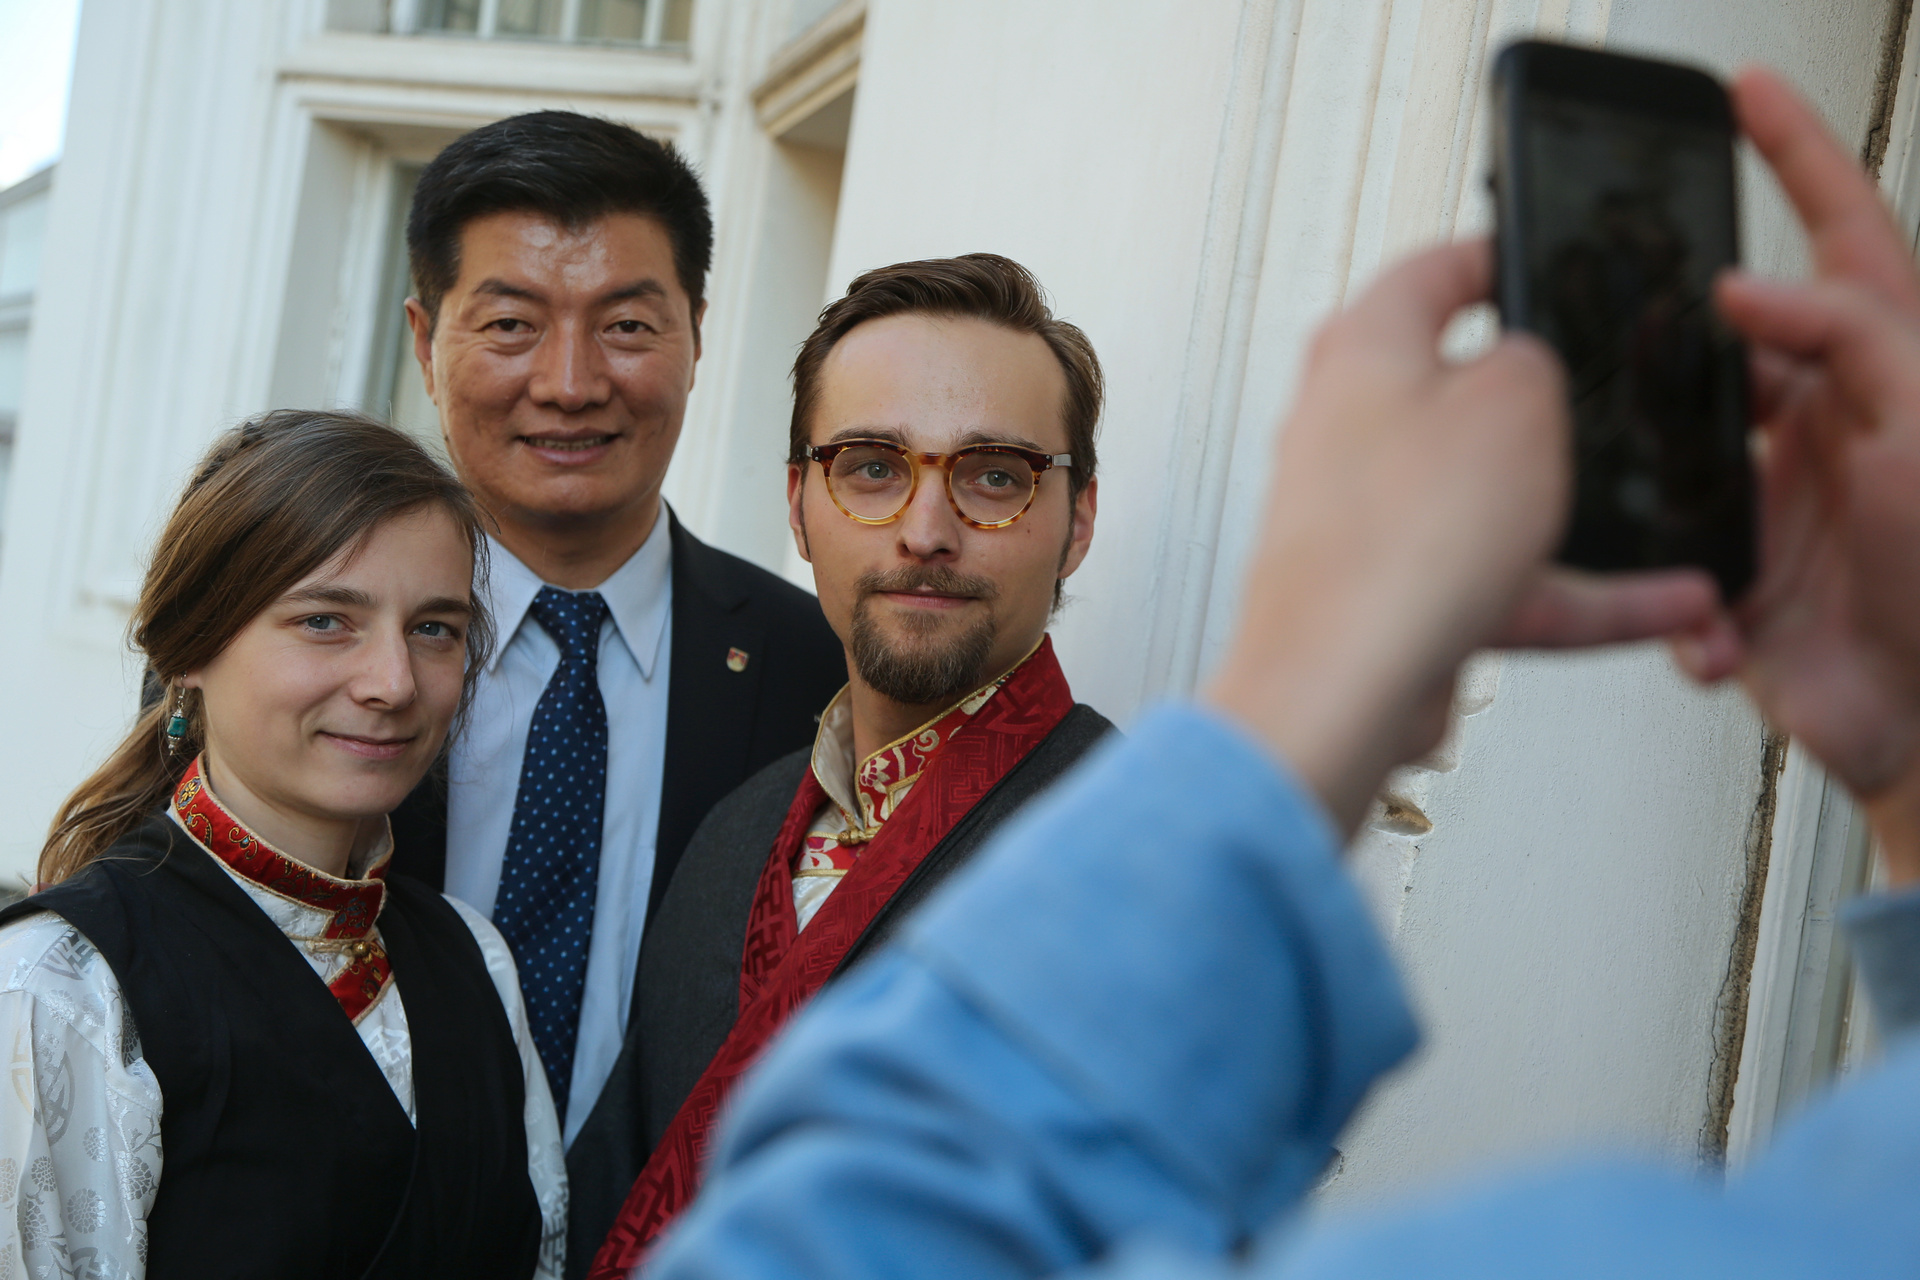 Lobsang Sangay in Prague (Forum 2000, October 9, 2018)